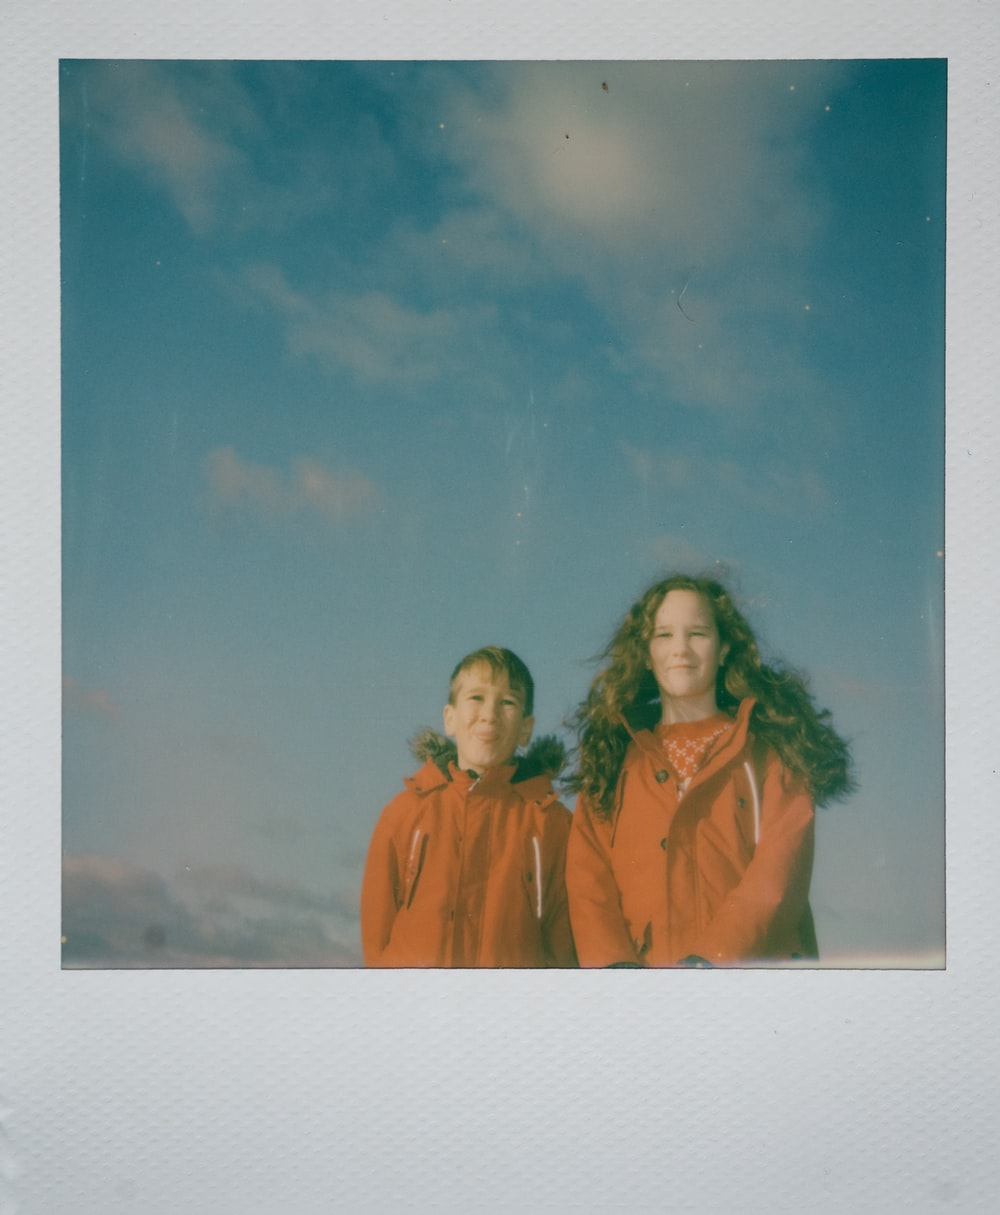 smiling boy and girl in orange jackets